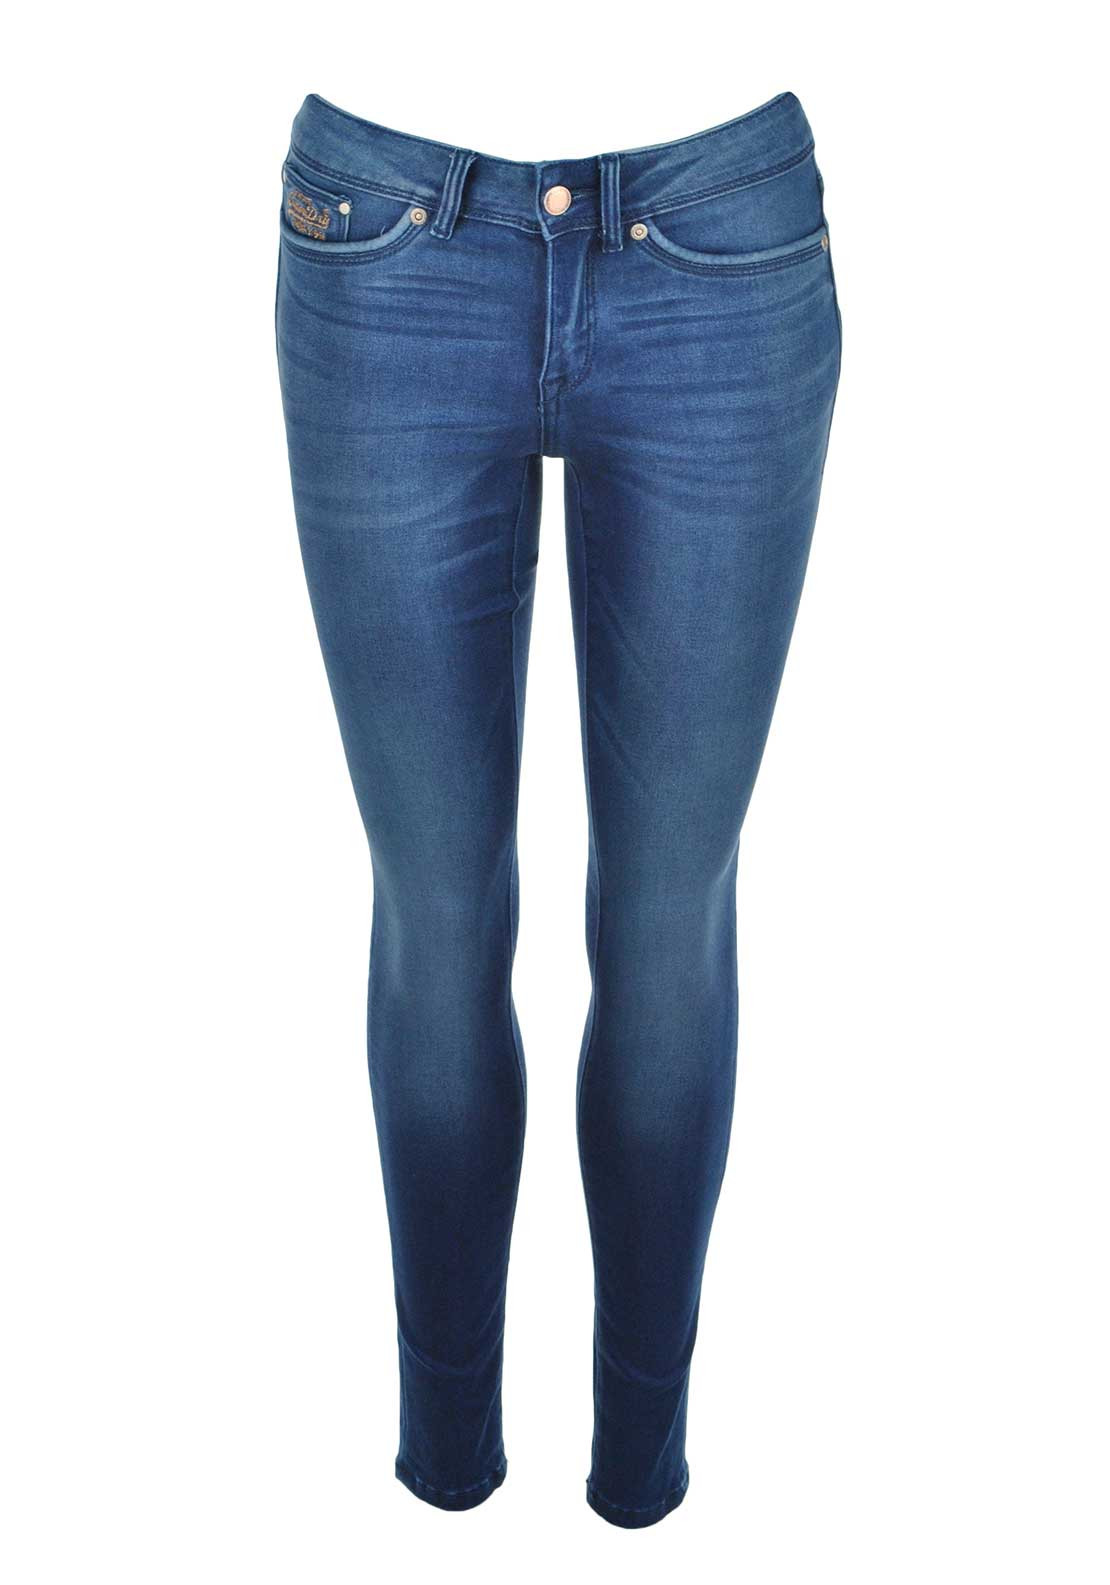 Superdry Womens Super Skinny Jeans, Pop Chalked Blue